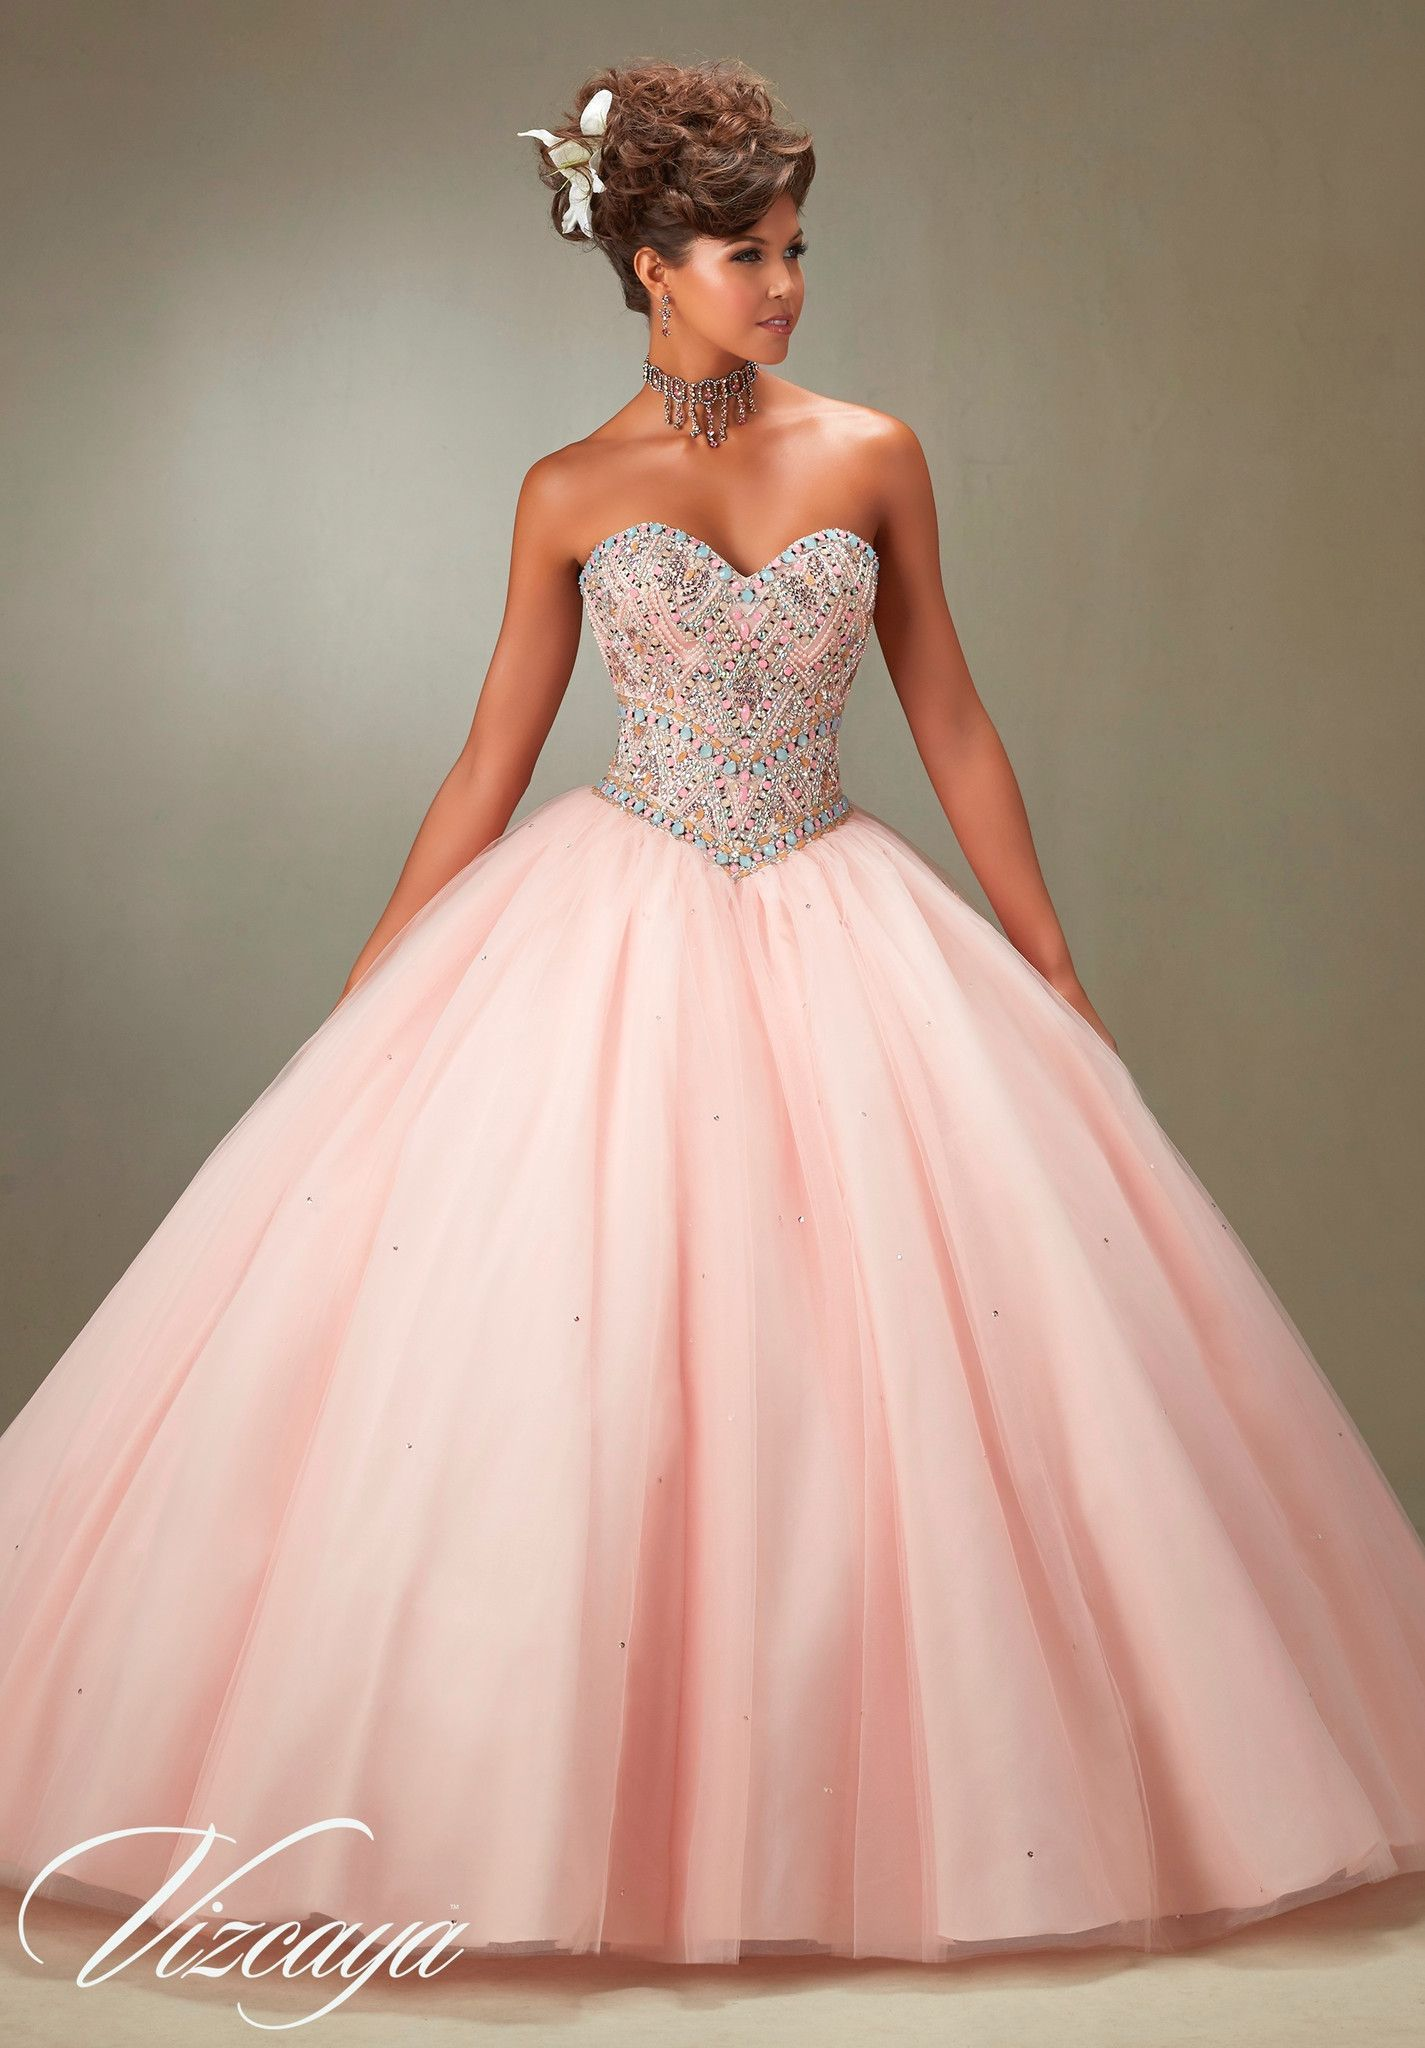 Mori Lee Quinceanera Dress 89076 | Vestiditos, Quinceañera y Años